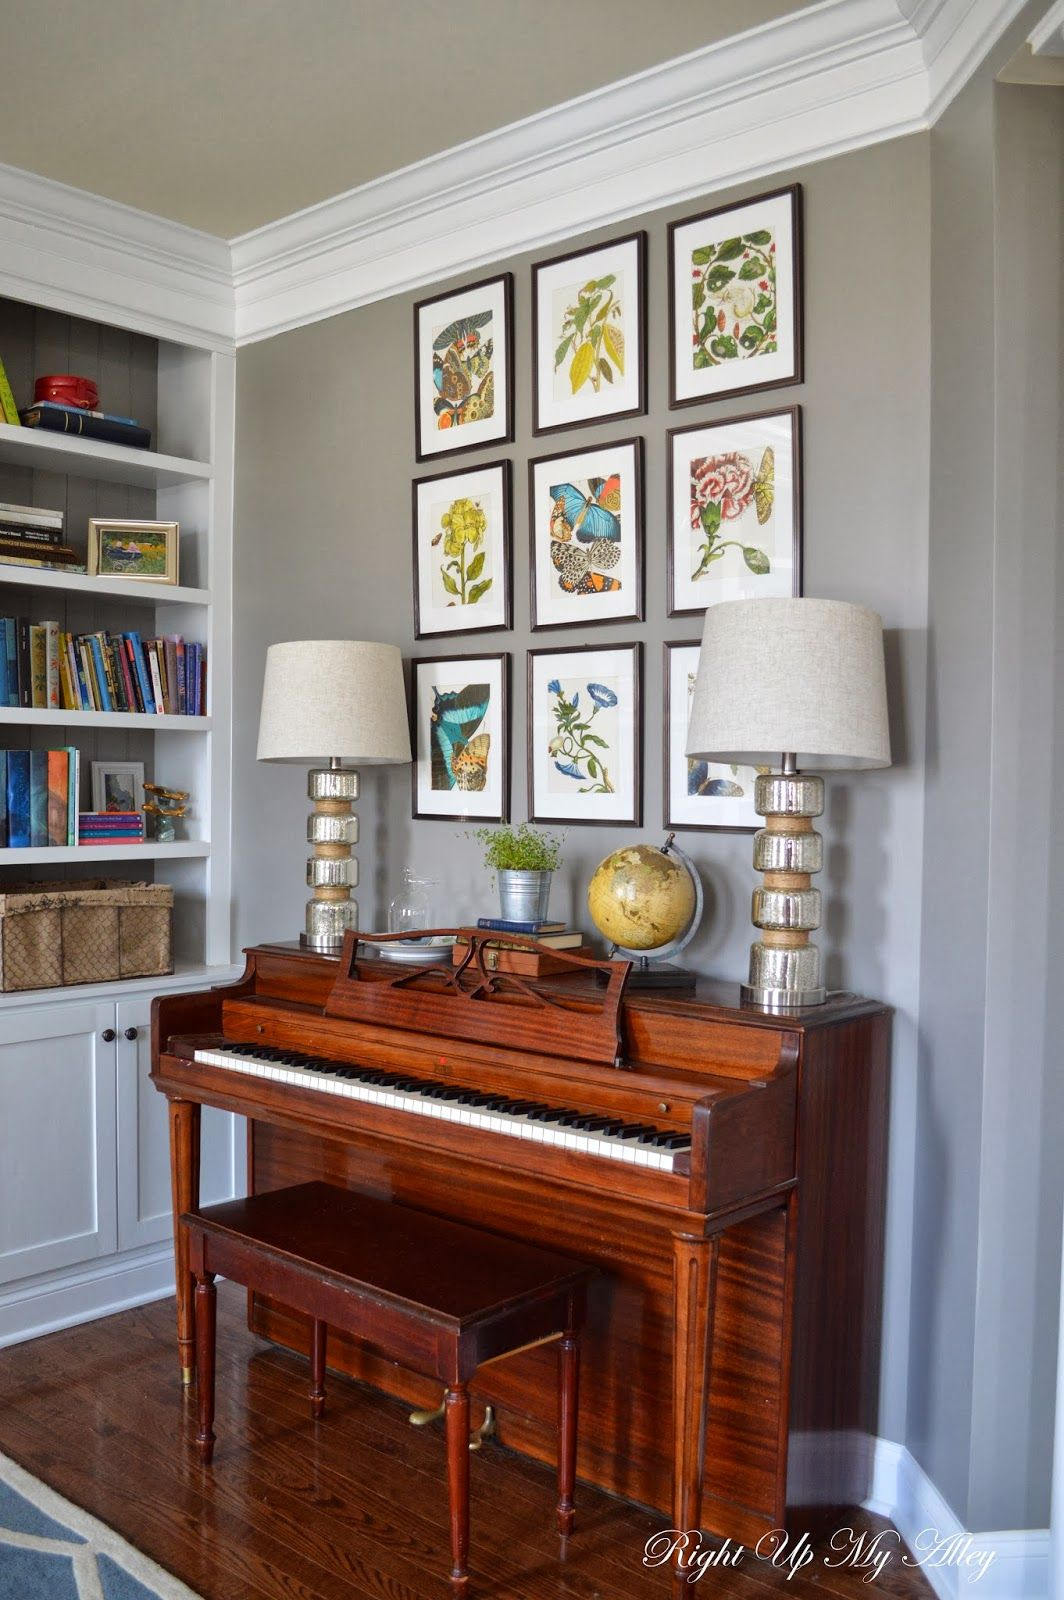 Here Is A Piano Like Yours Two Lamps And The Series Of Prints Above Give It Design Pizazz For Your Wall Could Go Higher With Tv